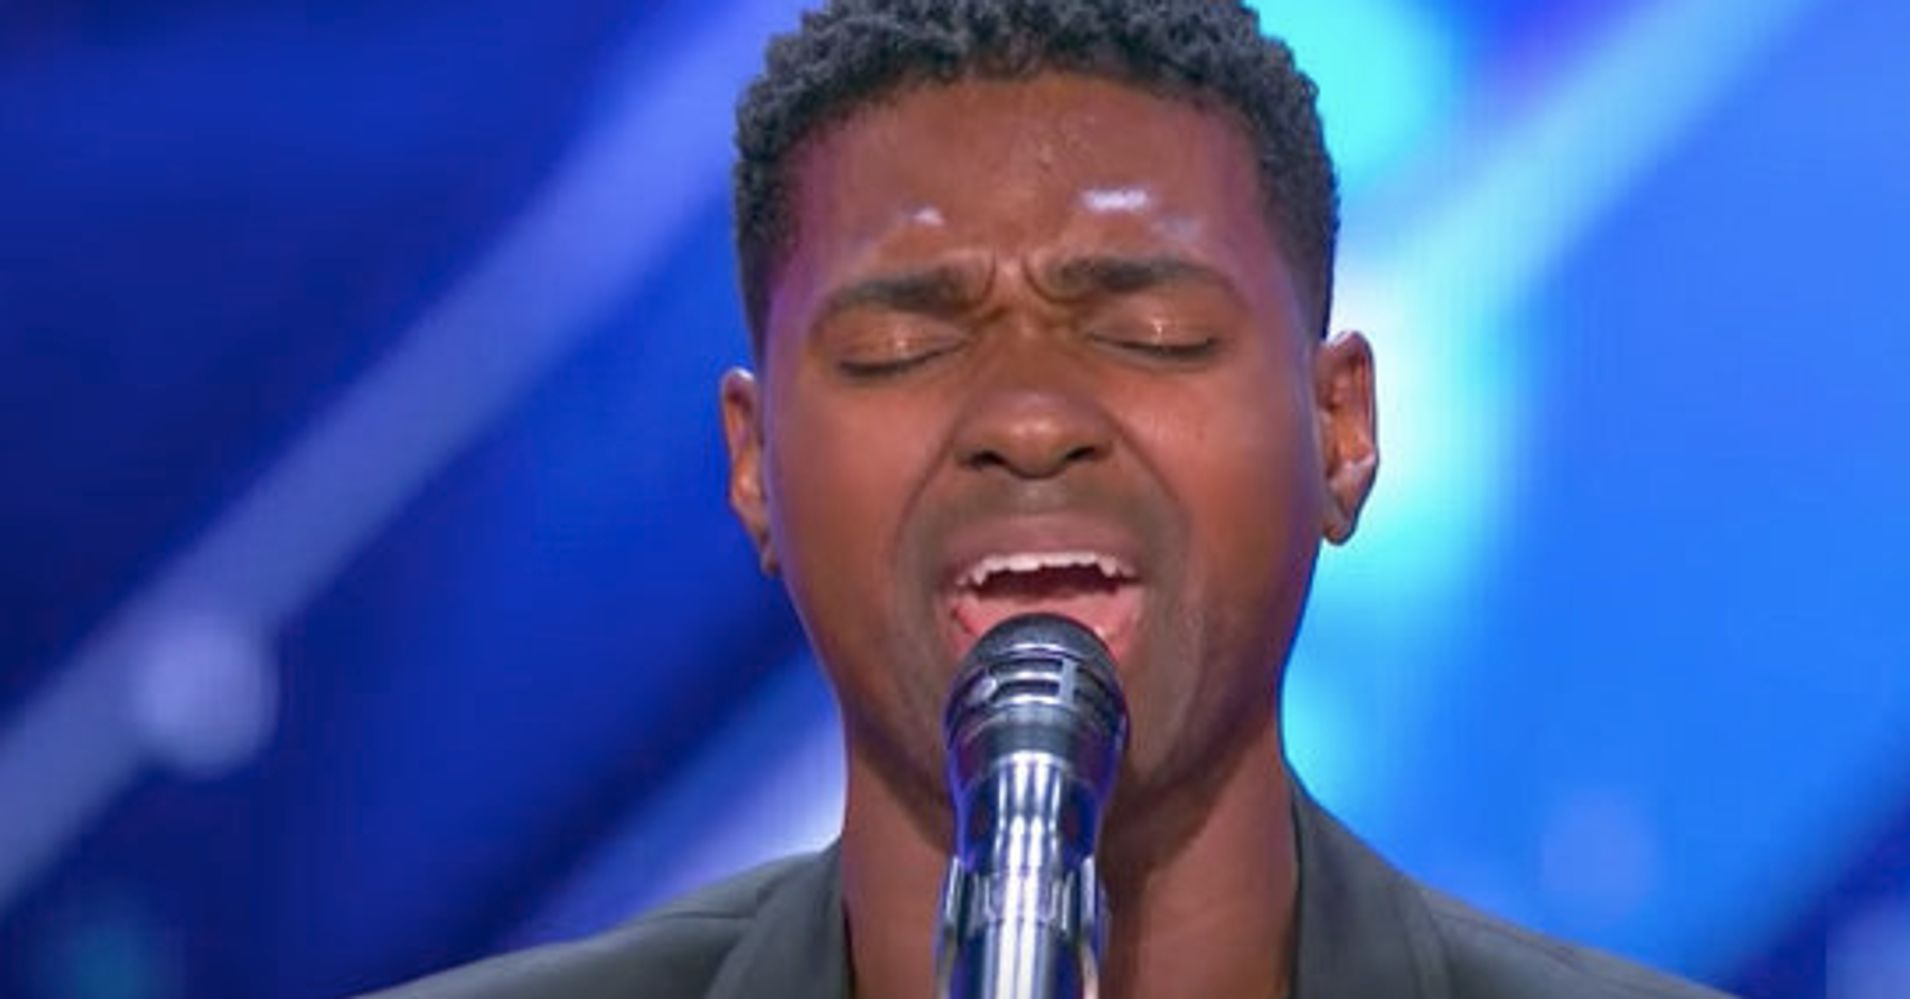 Americas got talent 2017 whitney houston - Spine Tingling Whitney Houston Cover Brings Down The House On America S Got Talent Huffpost